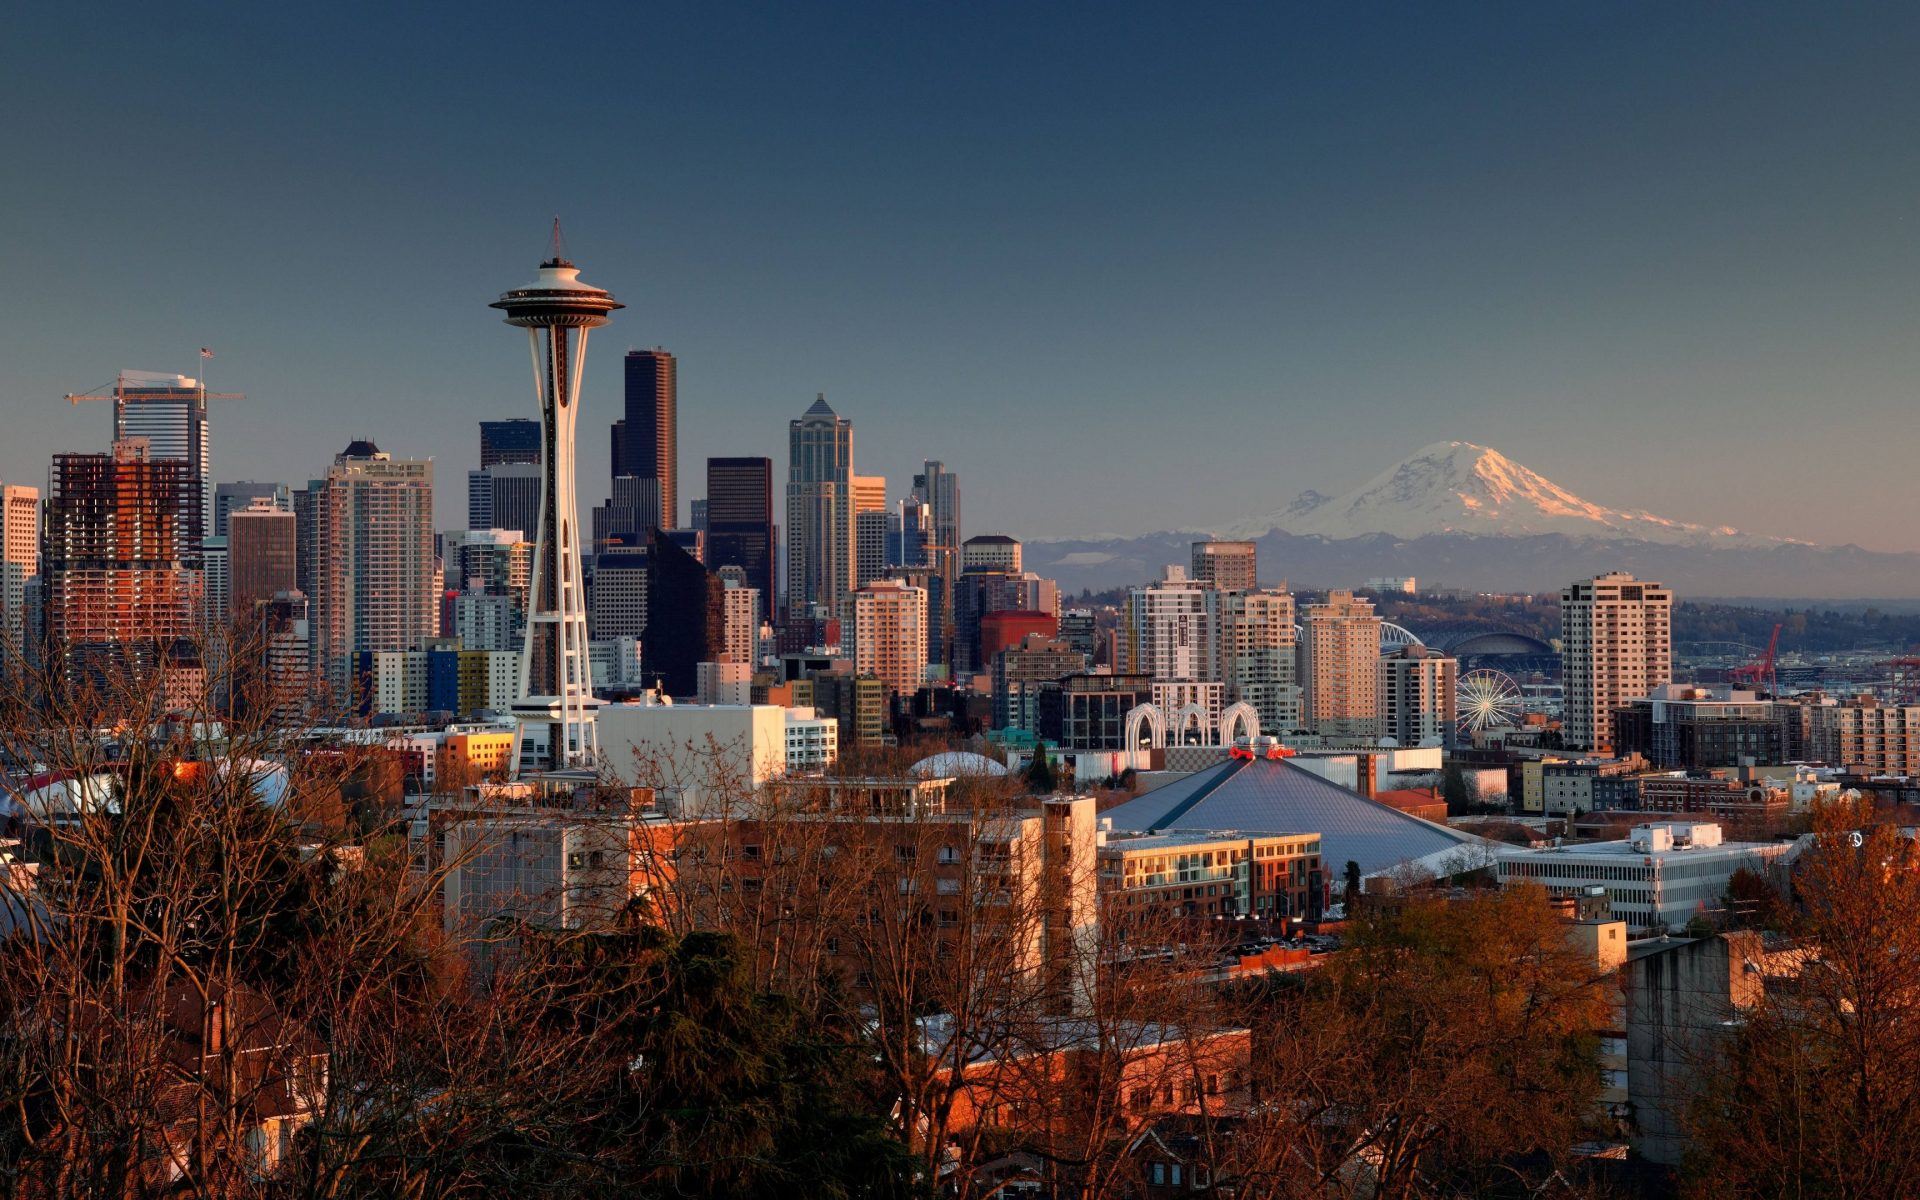 Seattle 4k wallpaper hd wallpaper background - Desktop wallpaper 4k ...